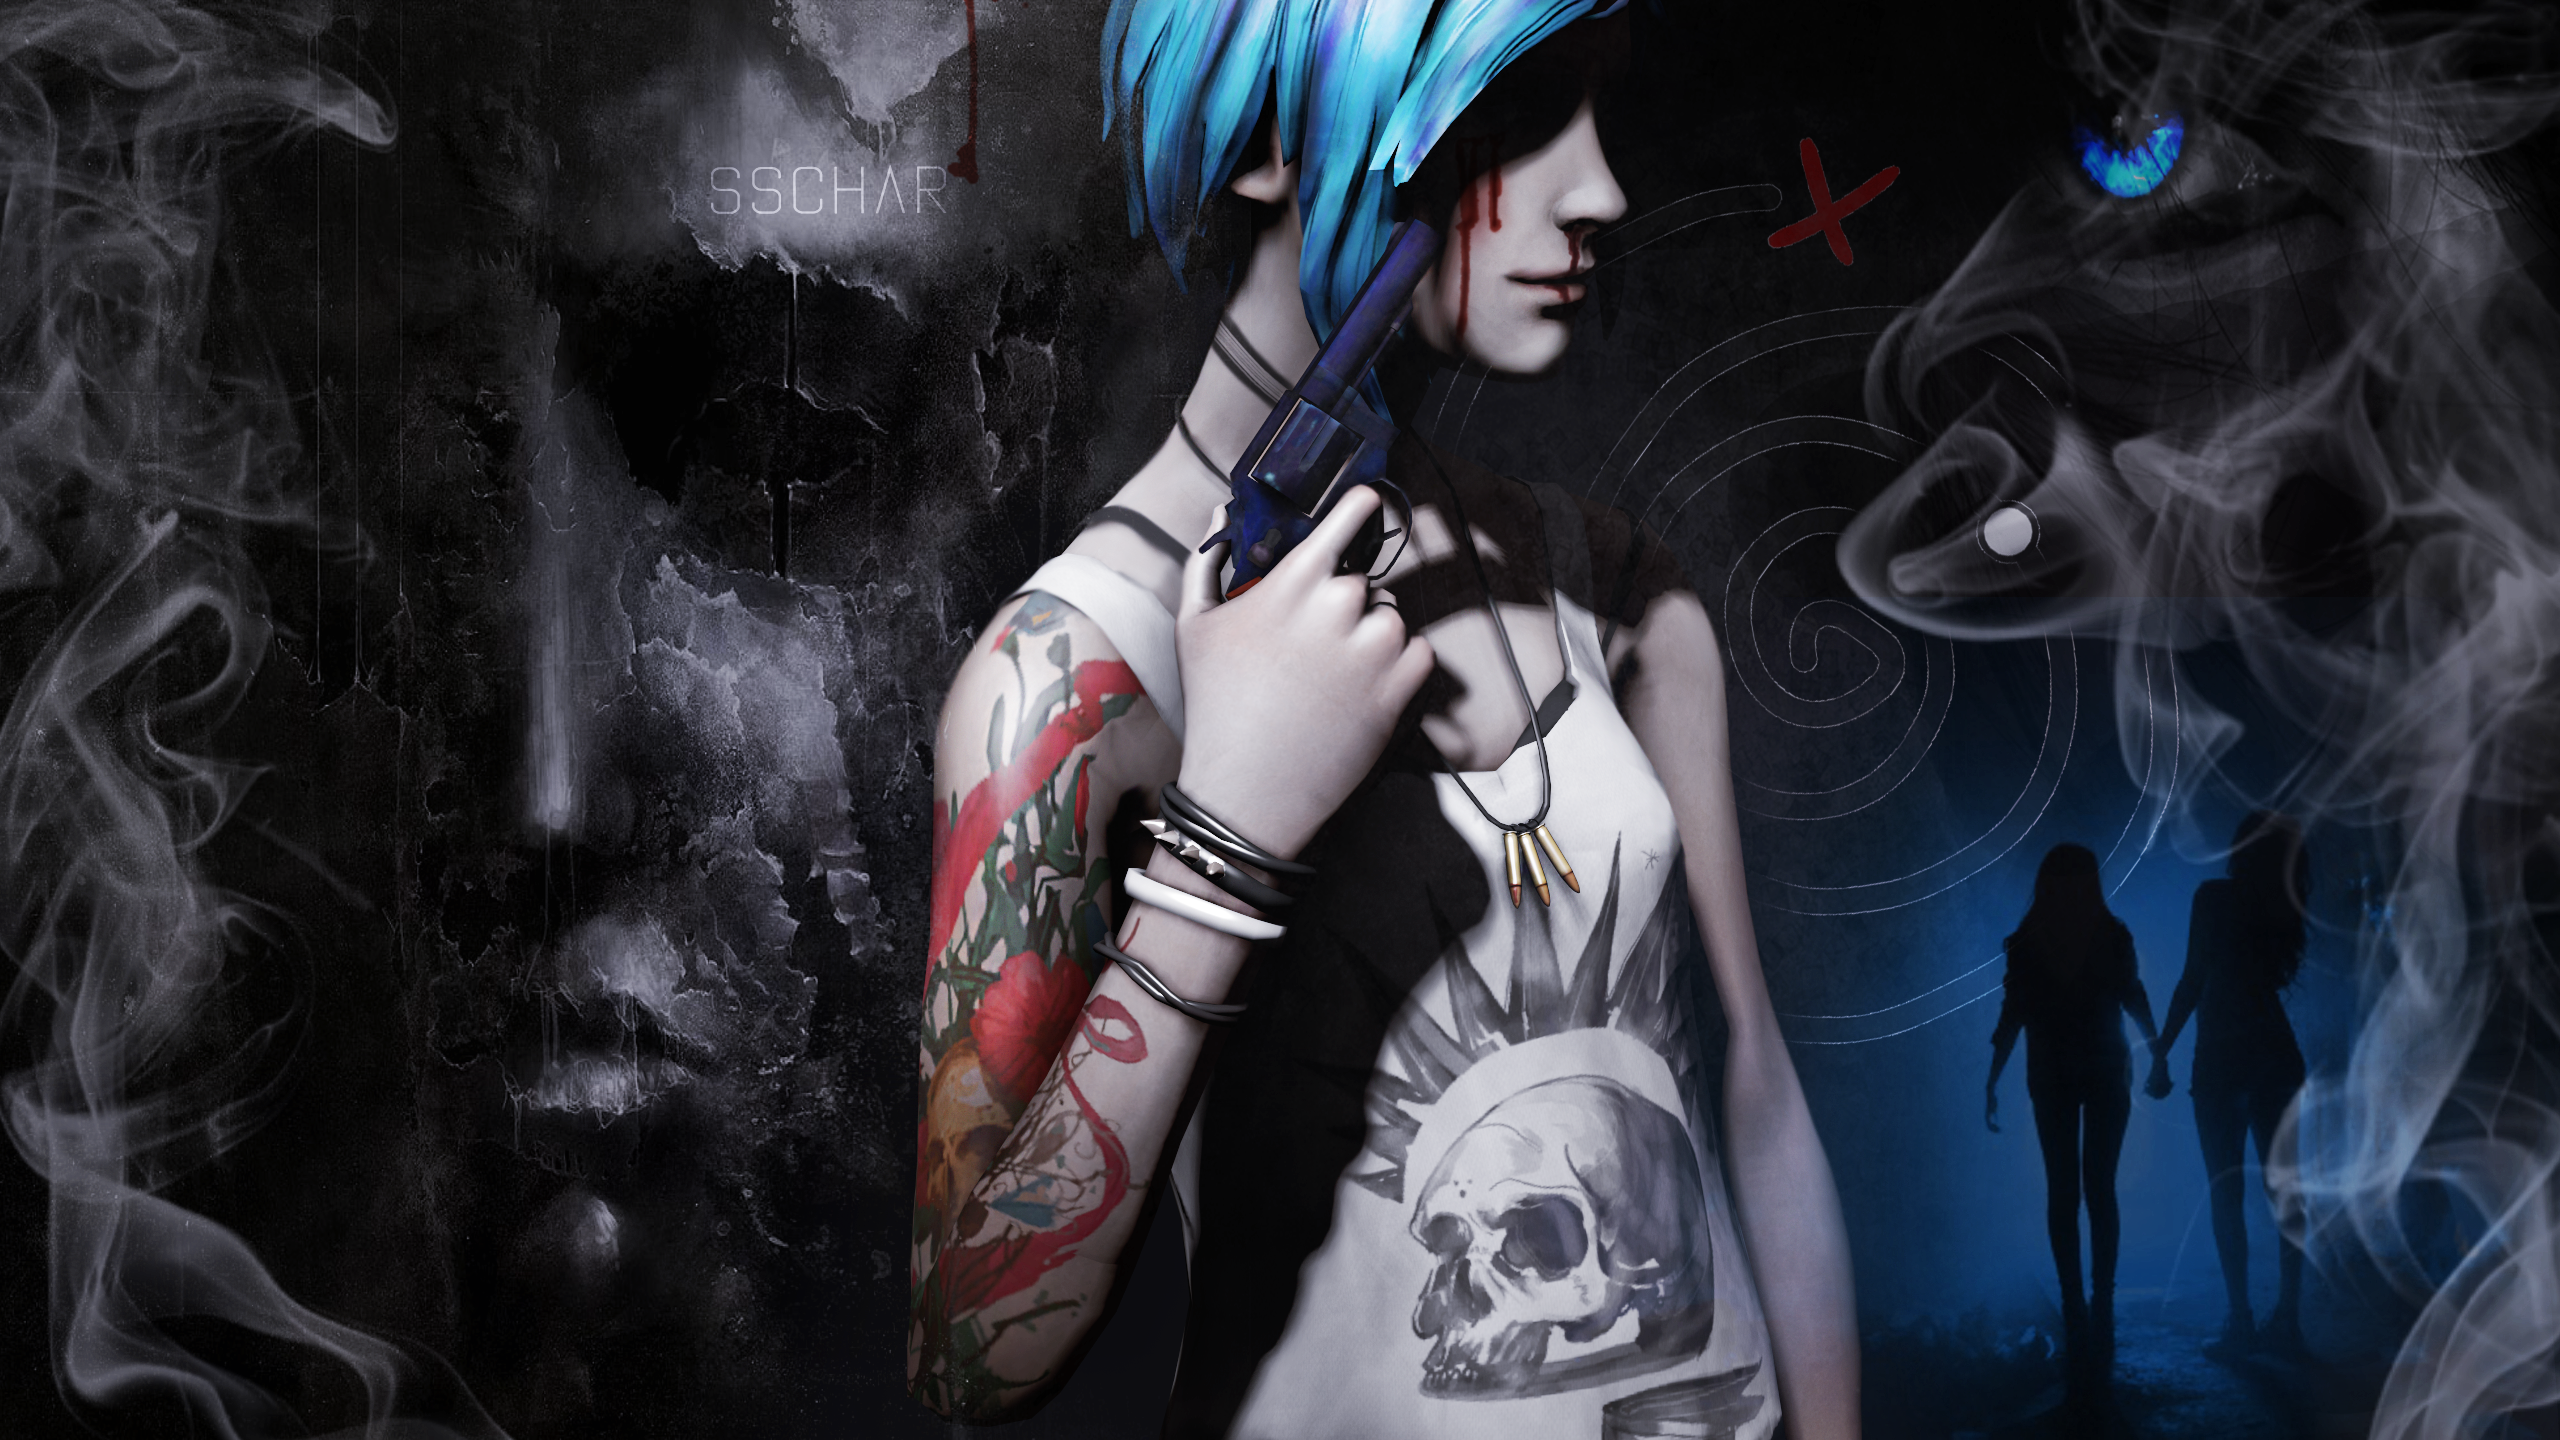 Life Is Strange Chloe Price Wallpaper 1 By Sschar On Deviantart